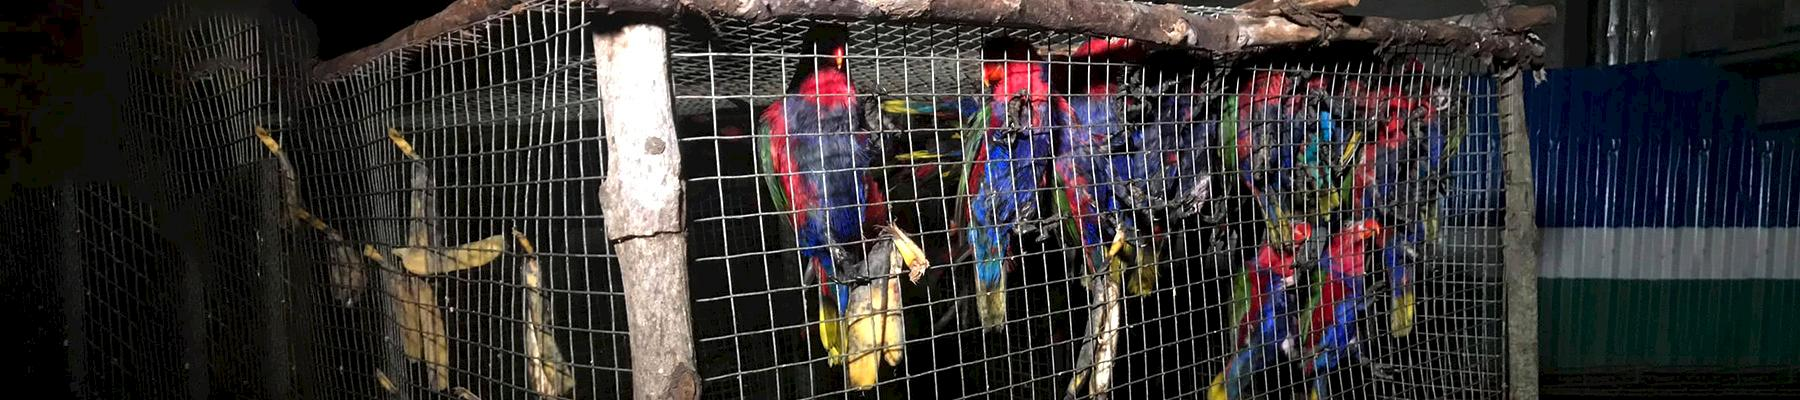 Black-capped Lories were among the sizeable haul of birds seized Photo courtesy BMB-DENR